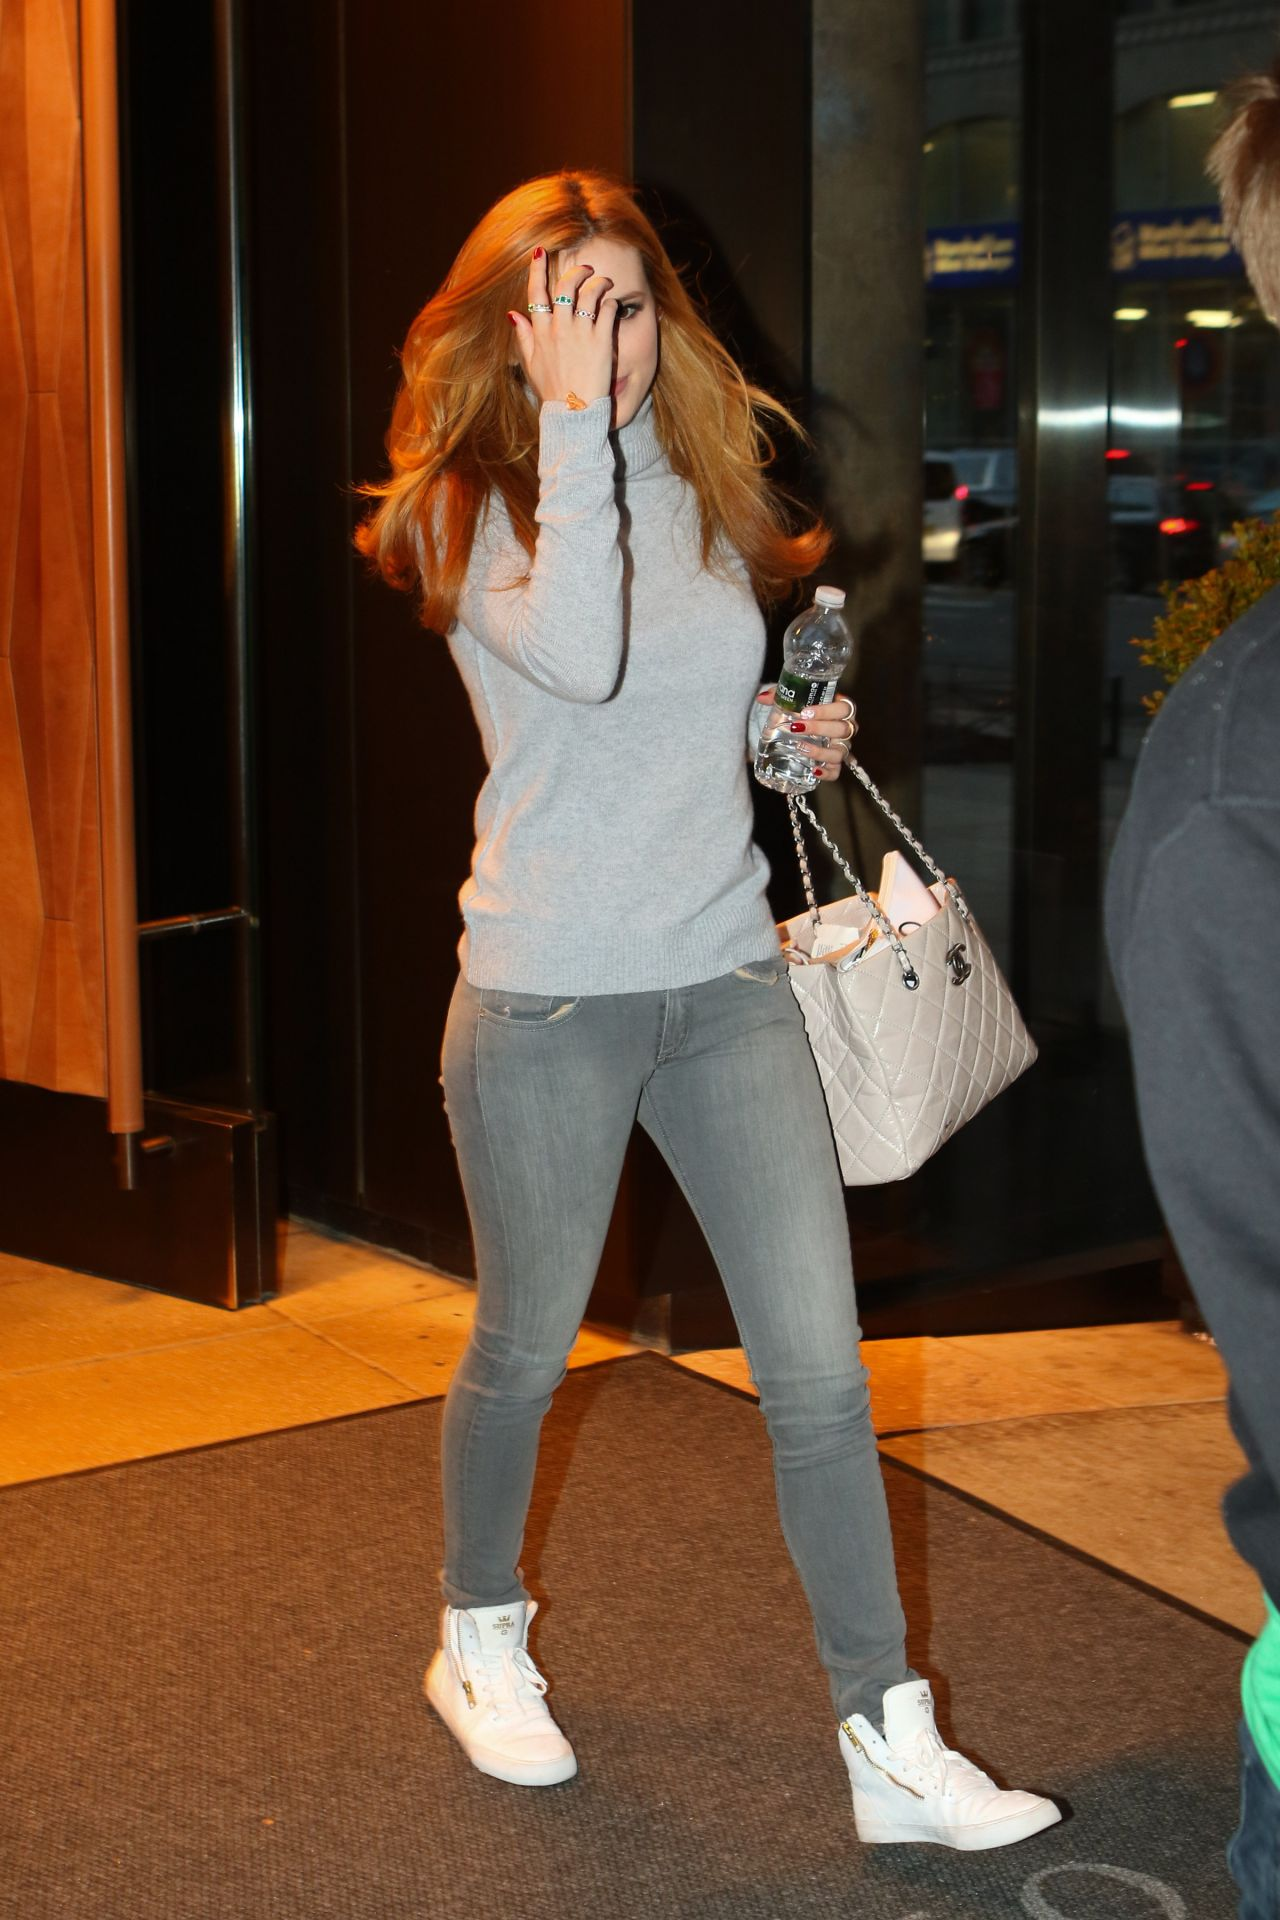 bella-thorne-in-tight-jeans-out-in-new-york-city-12-16-2015-_13